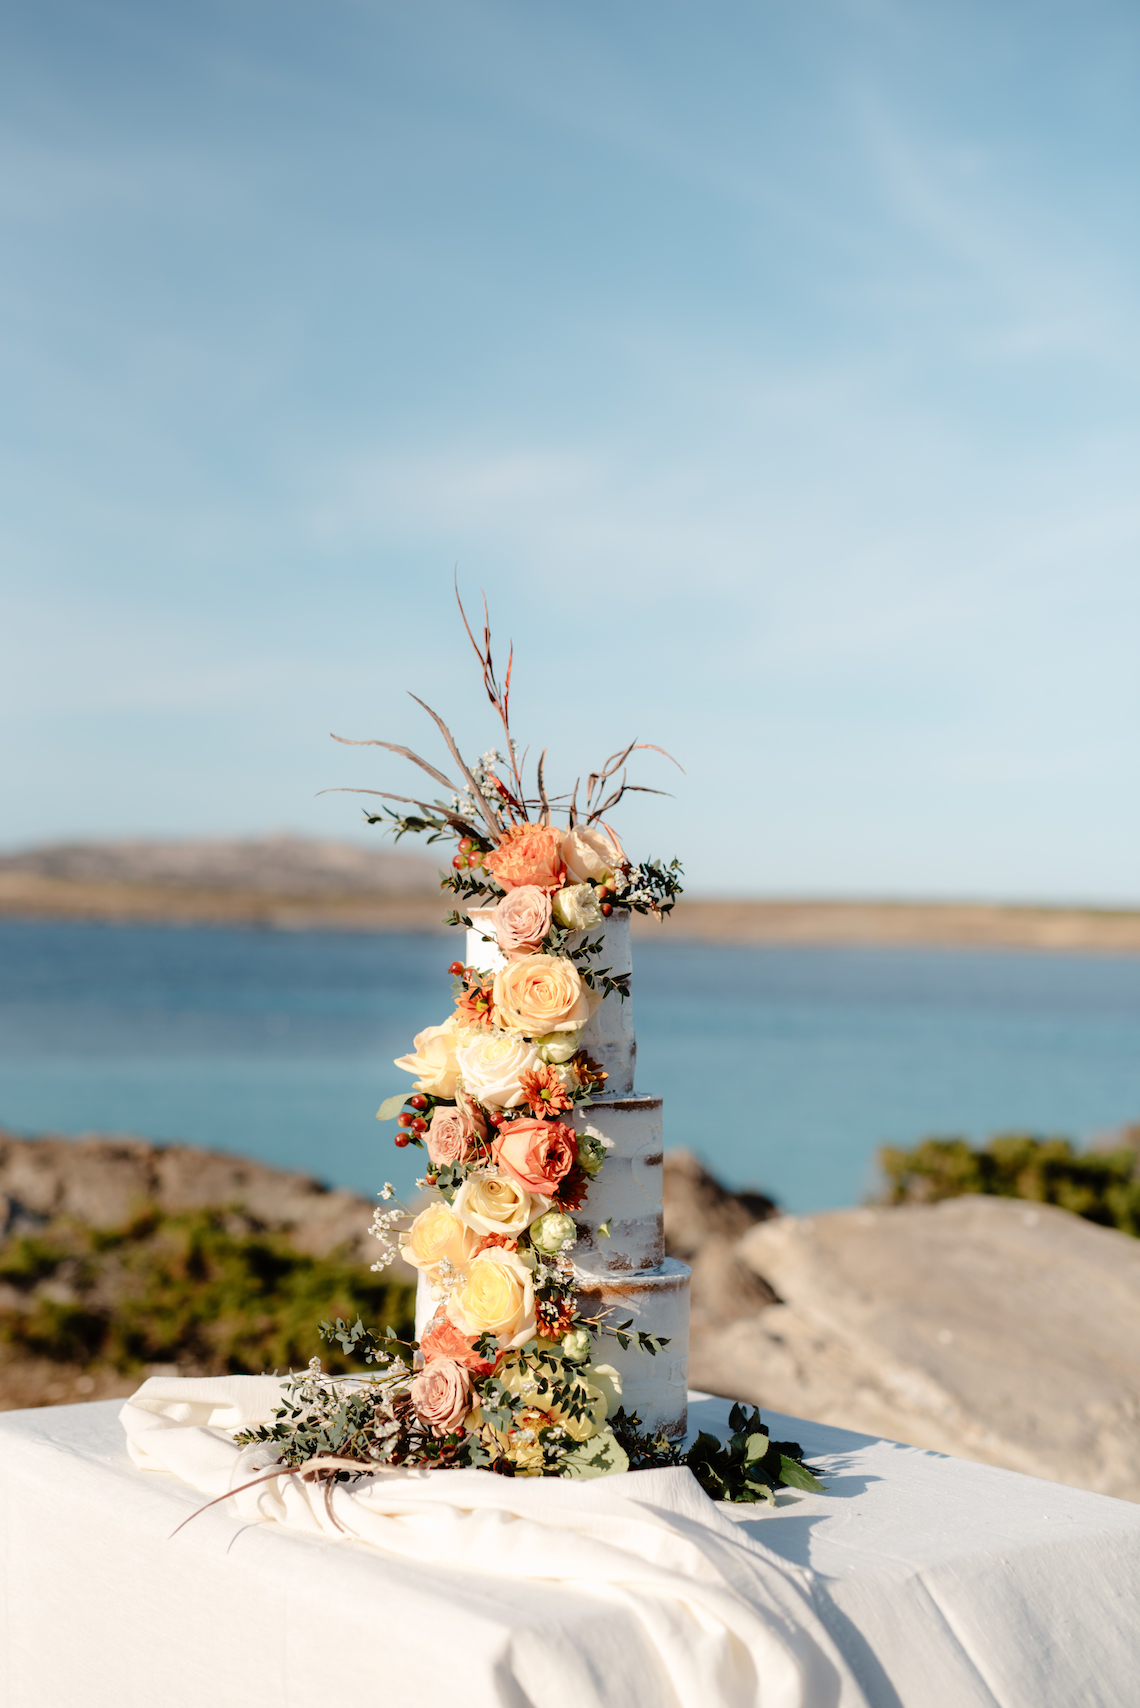 Shipwrecked; Seaside Elopement Inspiration From Sardinia | Valeria Mameli 2